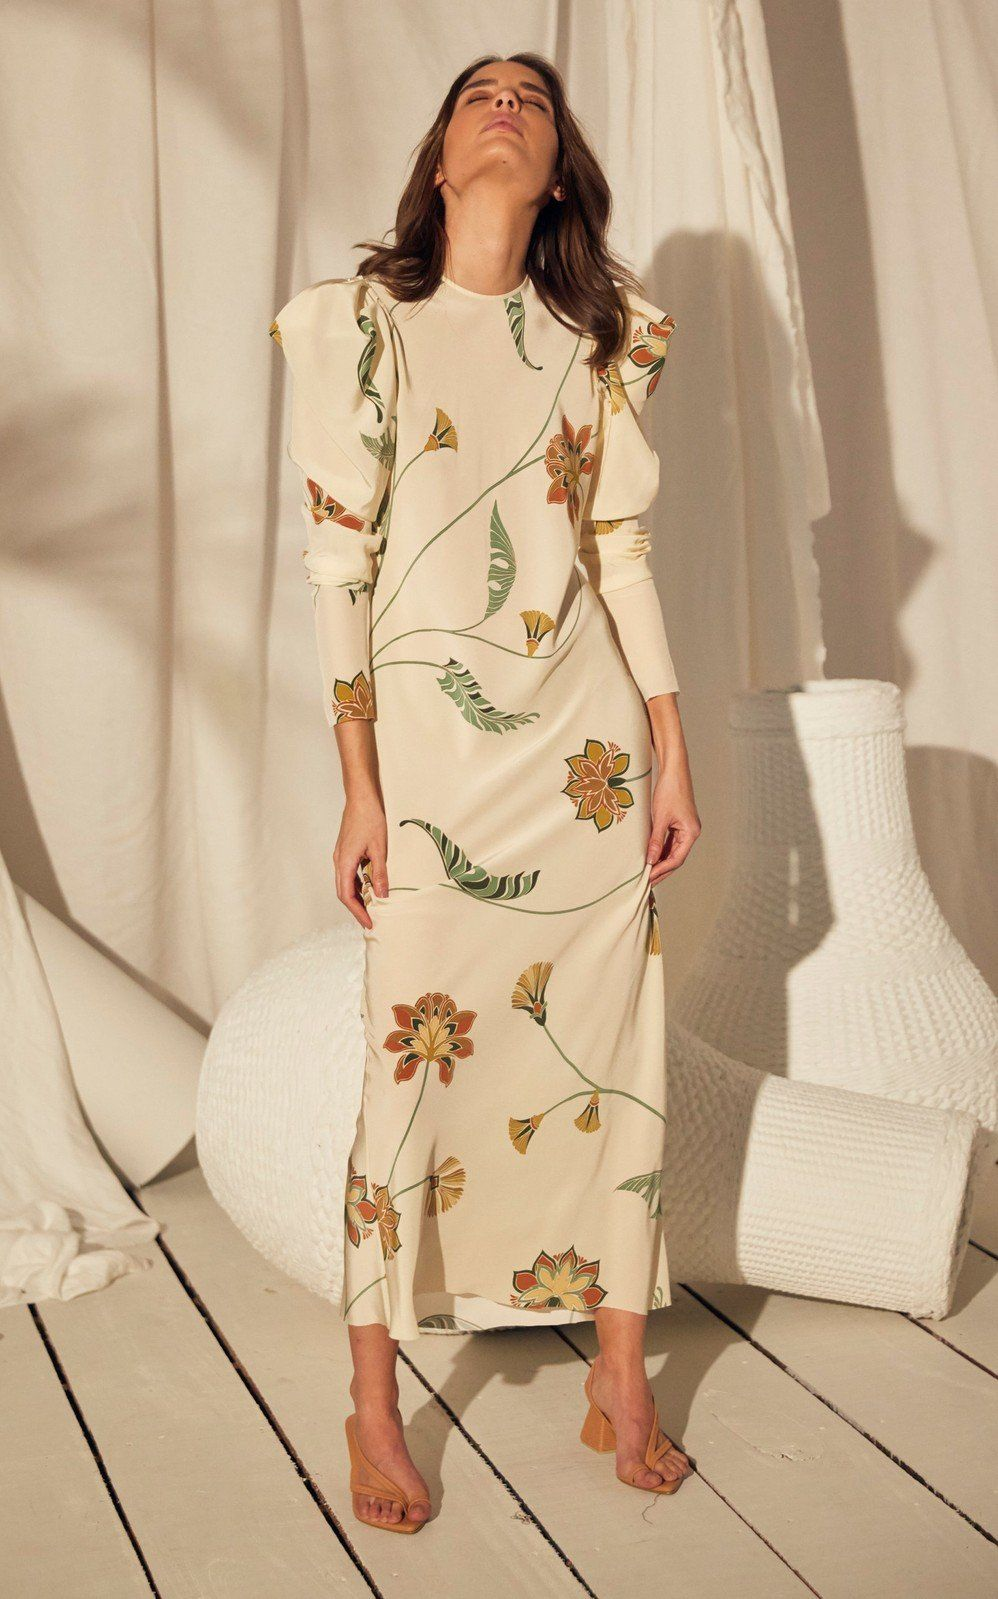 Floral Dresses 2020 Print Dresses African Print Dresses For Wedding Guest Yellow Floral Dress Outfit Women'S Dashiki Tiger Print Dress